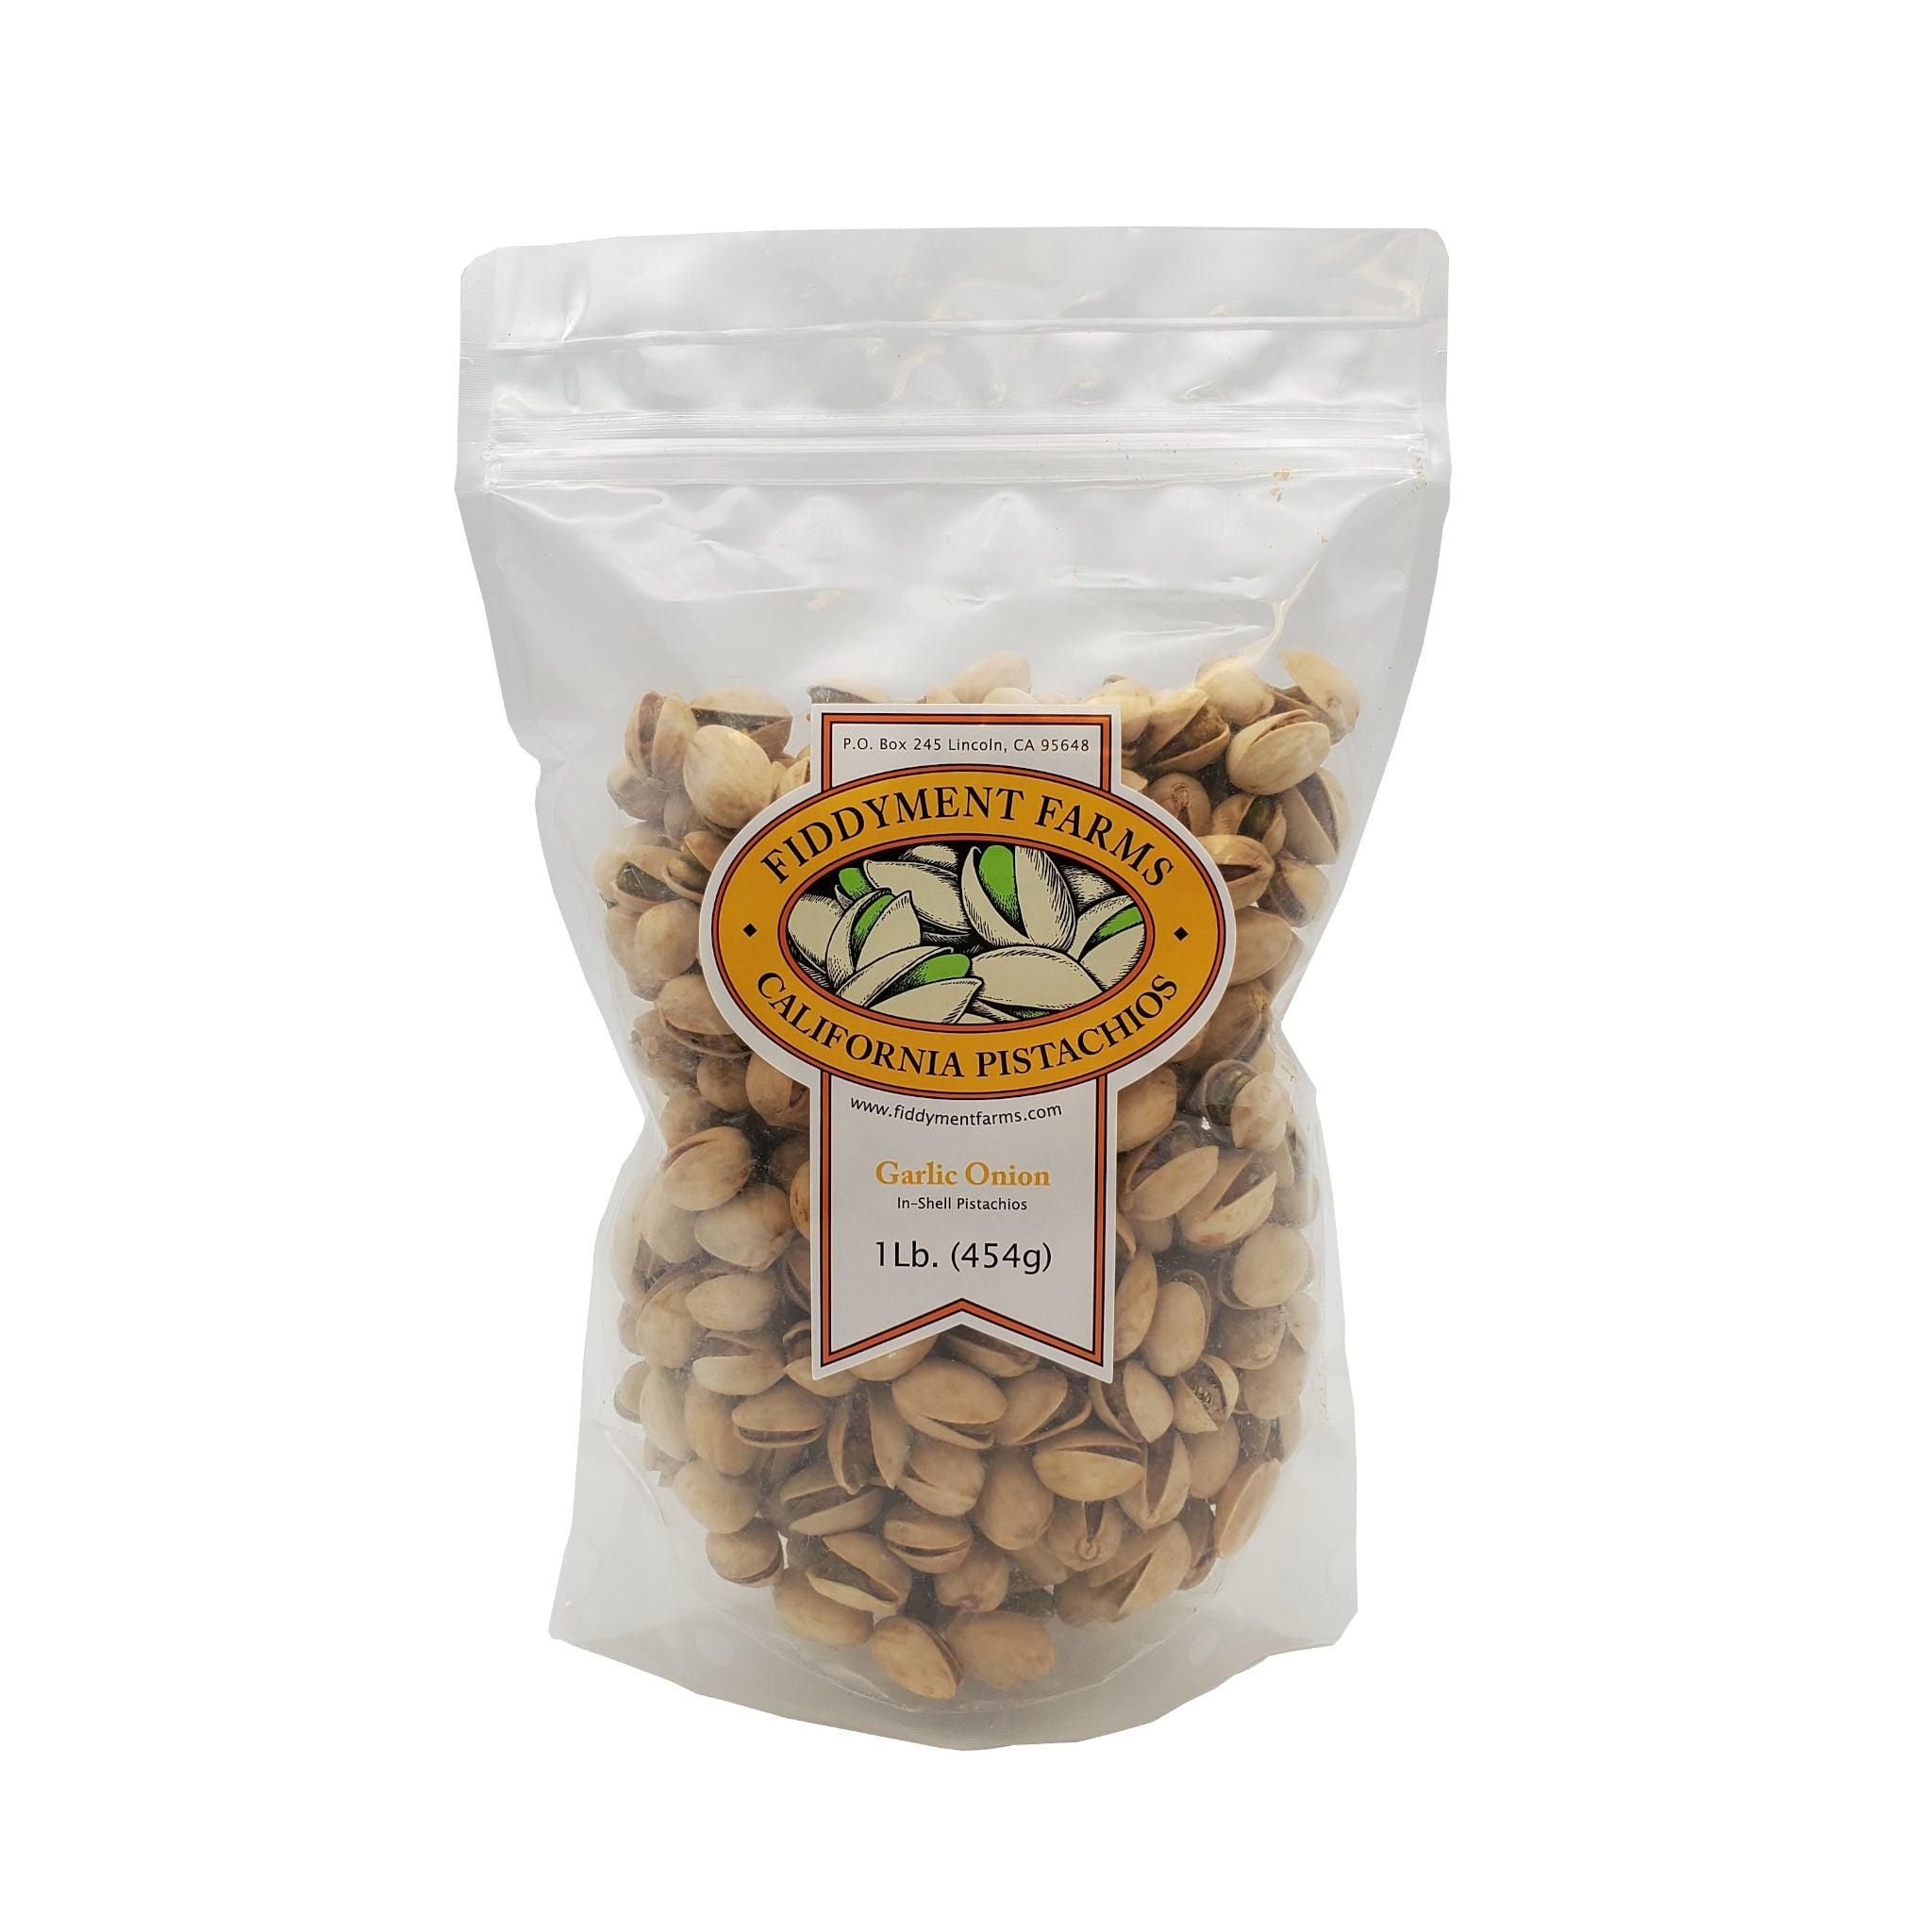 Garlic Onion Pistachios in 1 lb bag